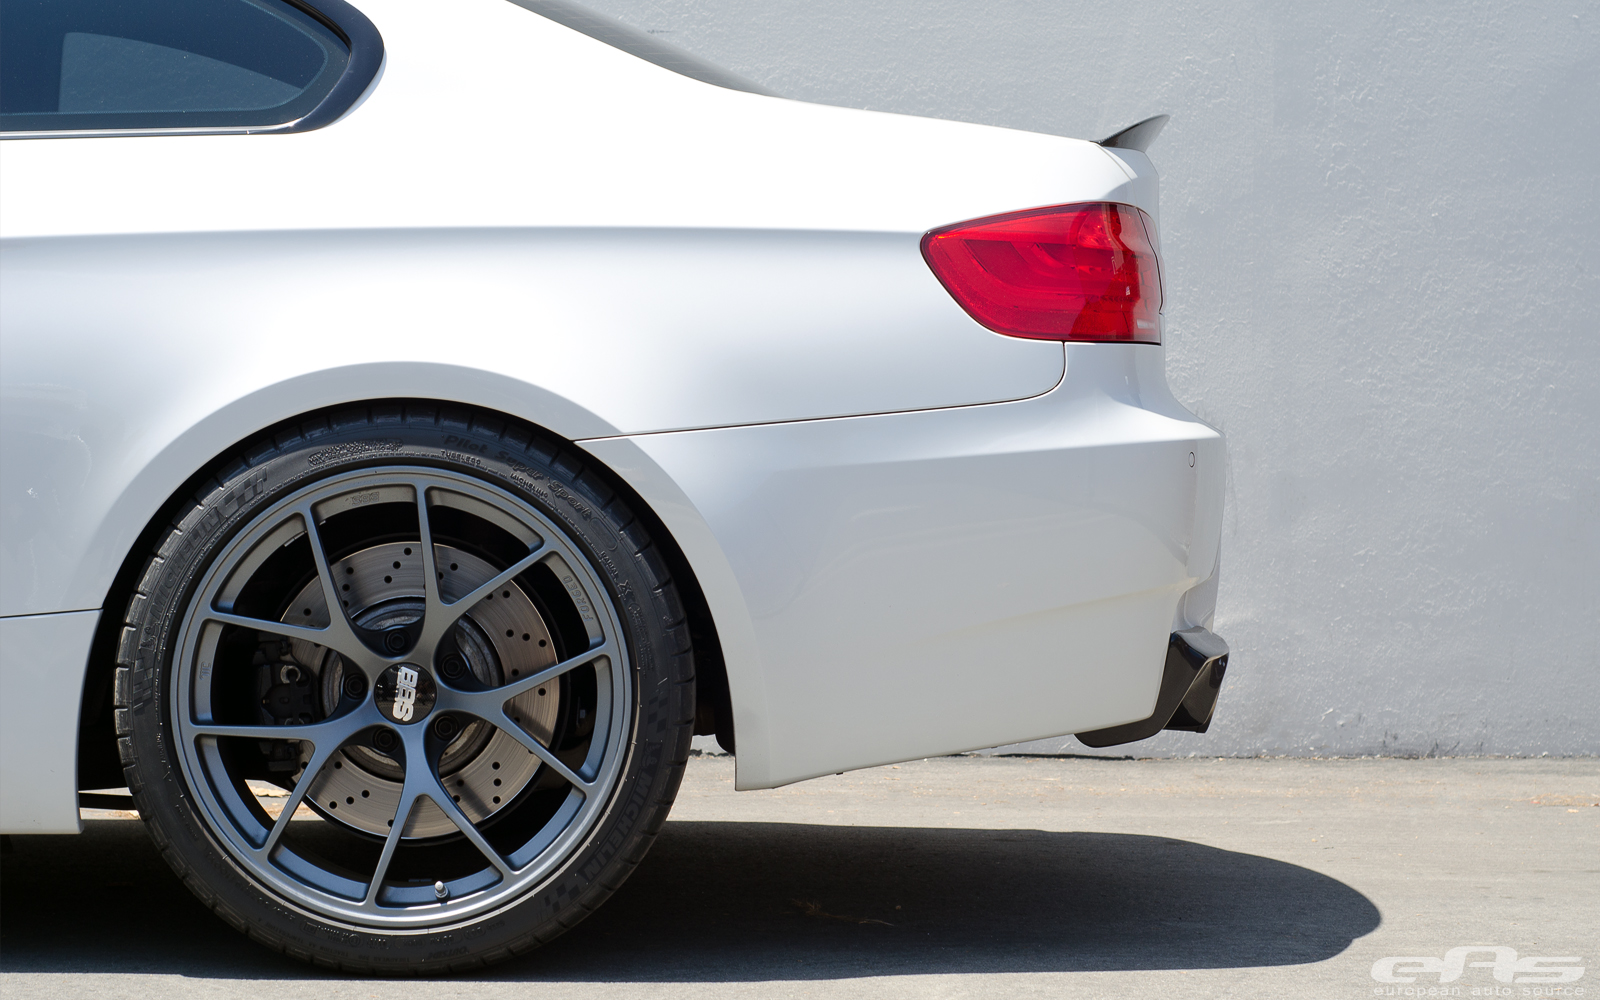 Bmw E92 M3 On Bbs Wheels Gets Gt4 Exhaust At Eas